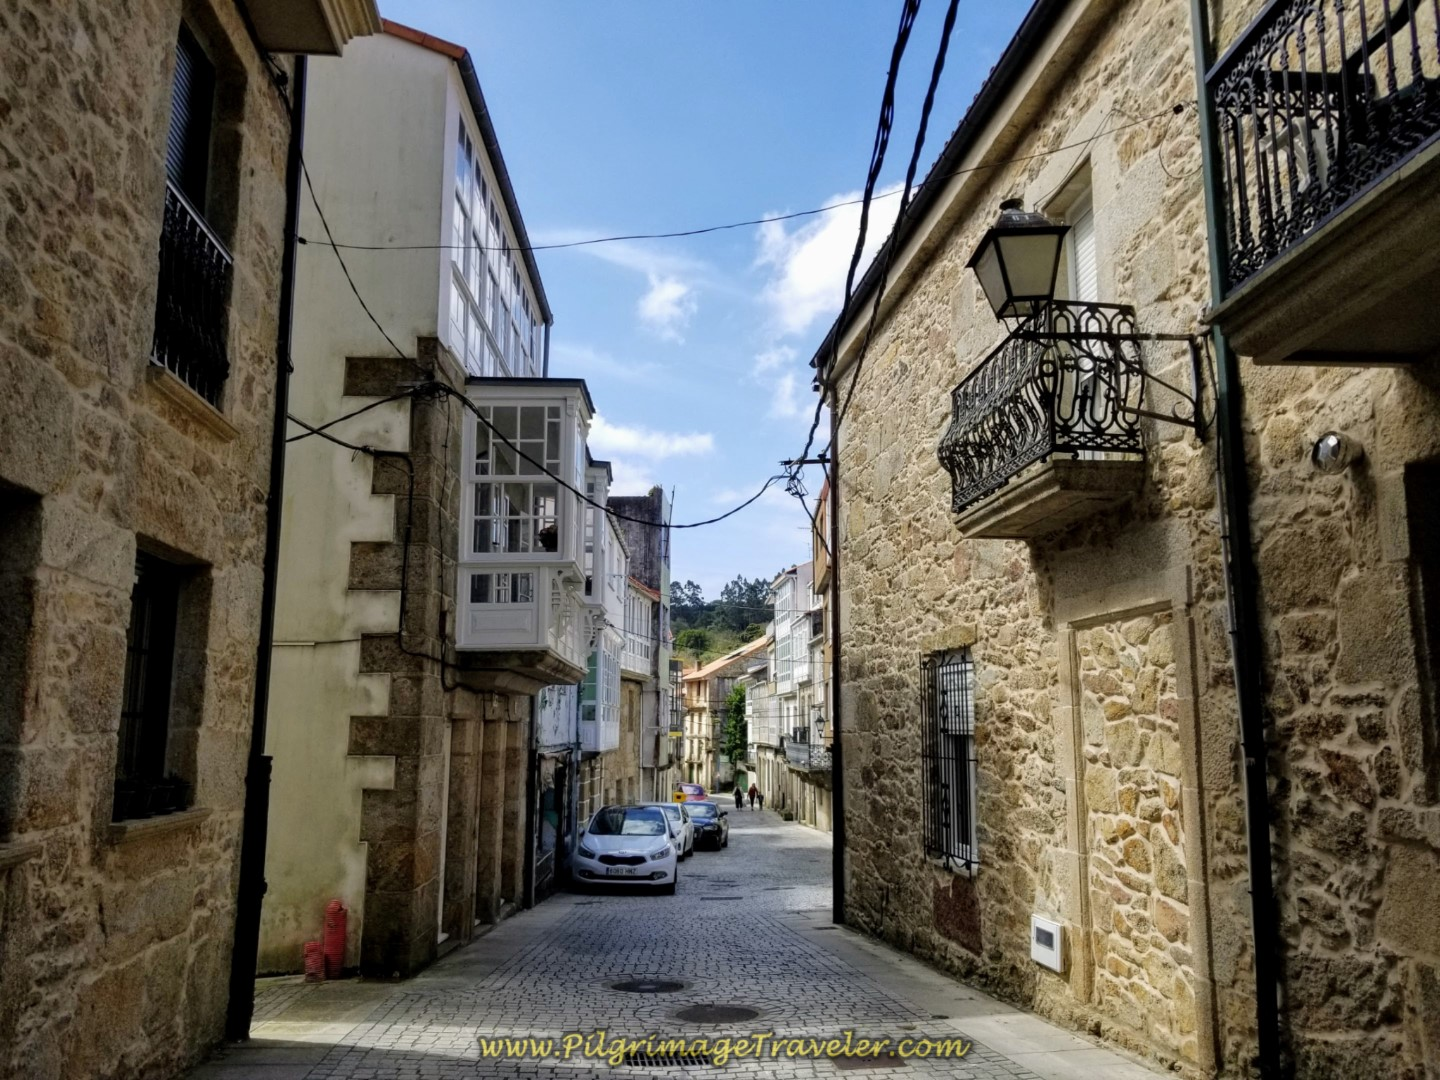 Narrow Medieval Streets of Corcubión on day three of the Camino Finisterre